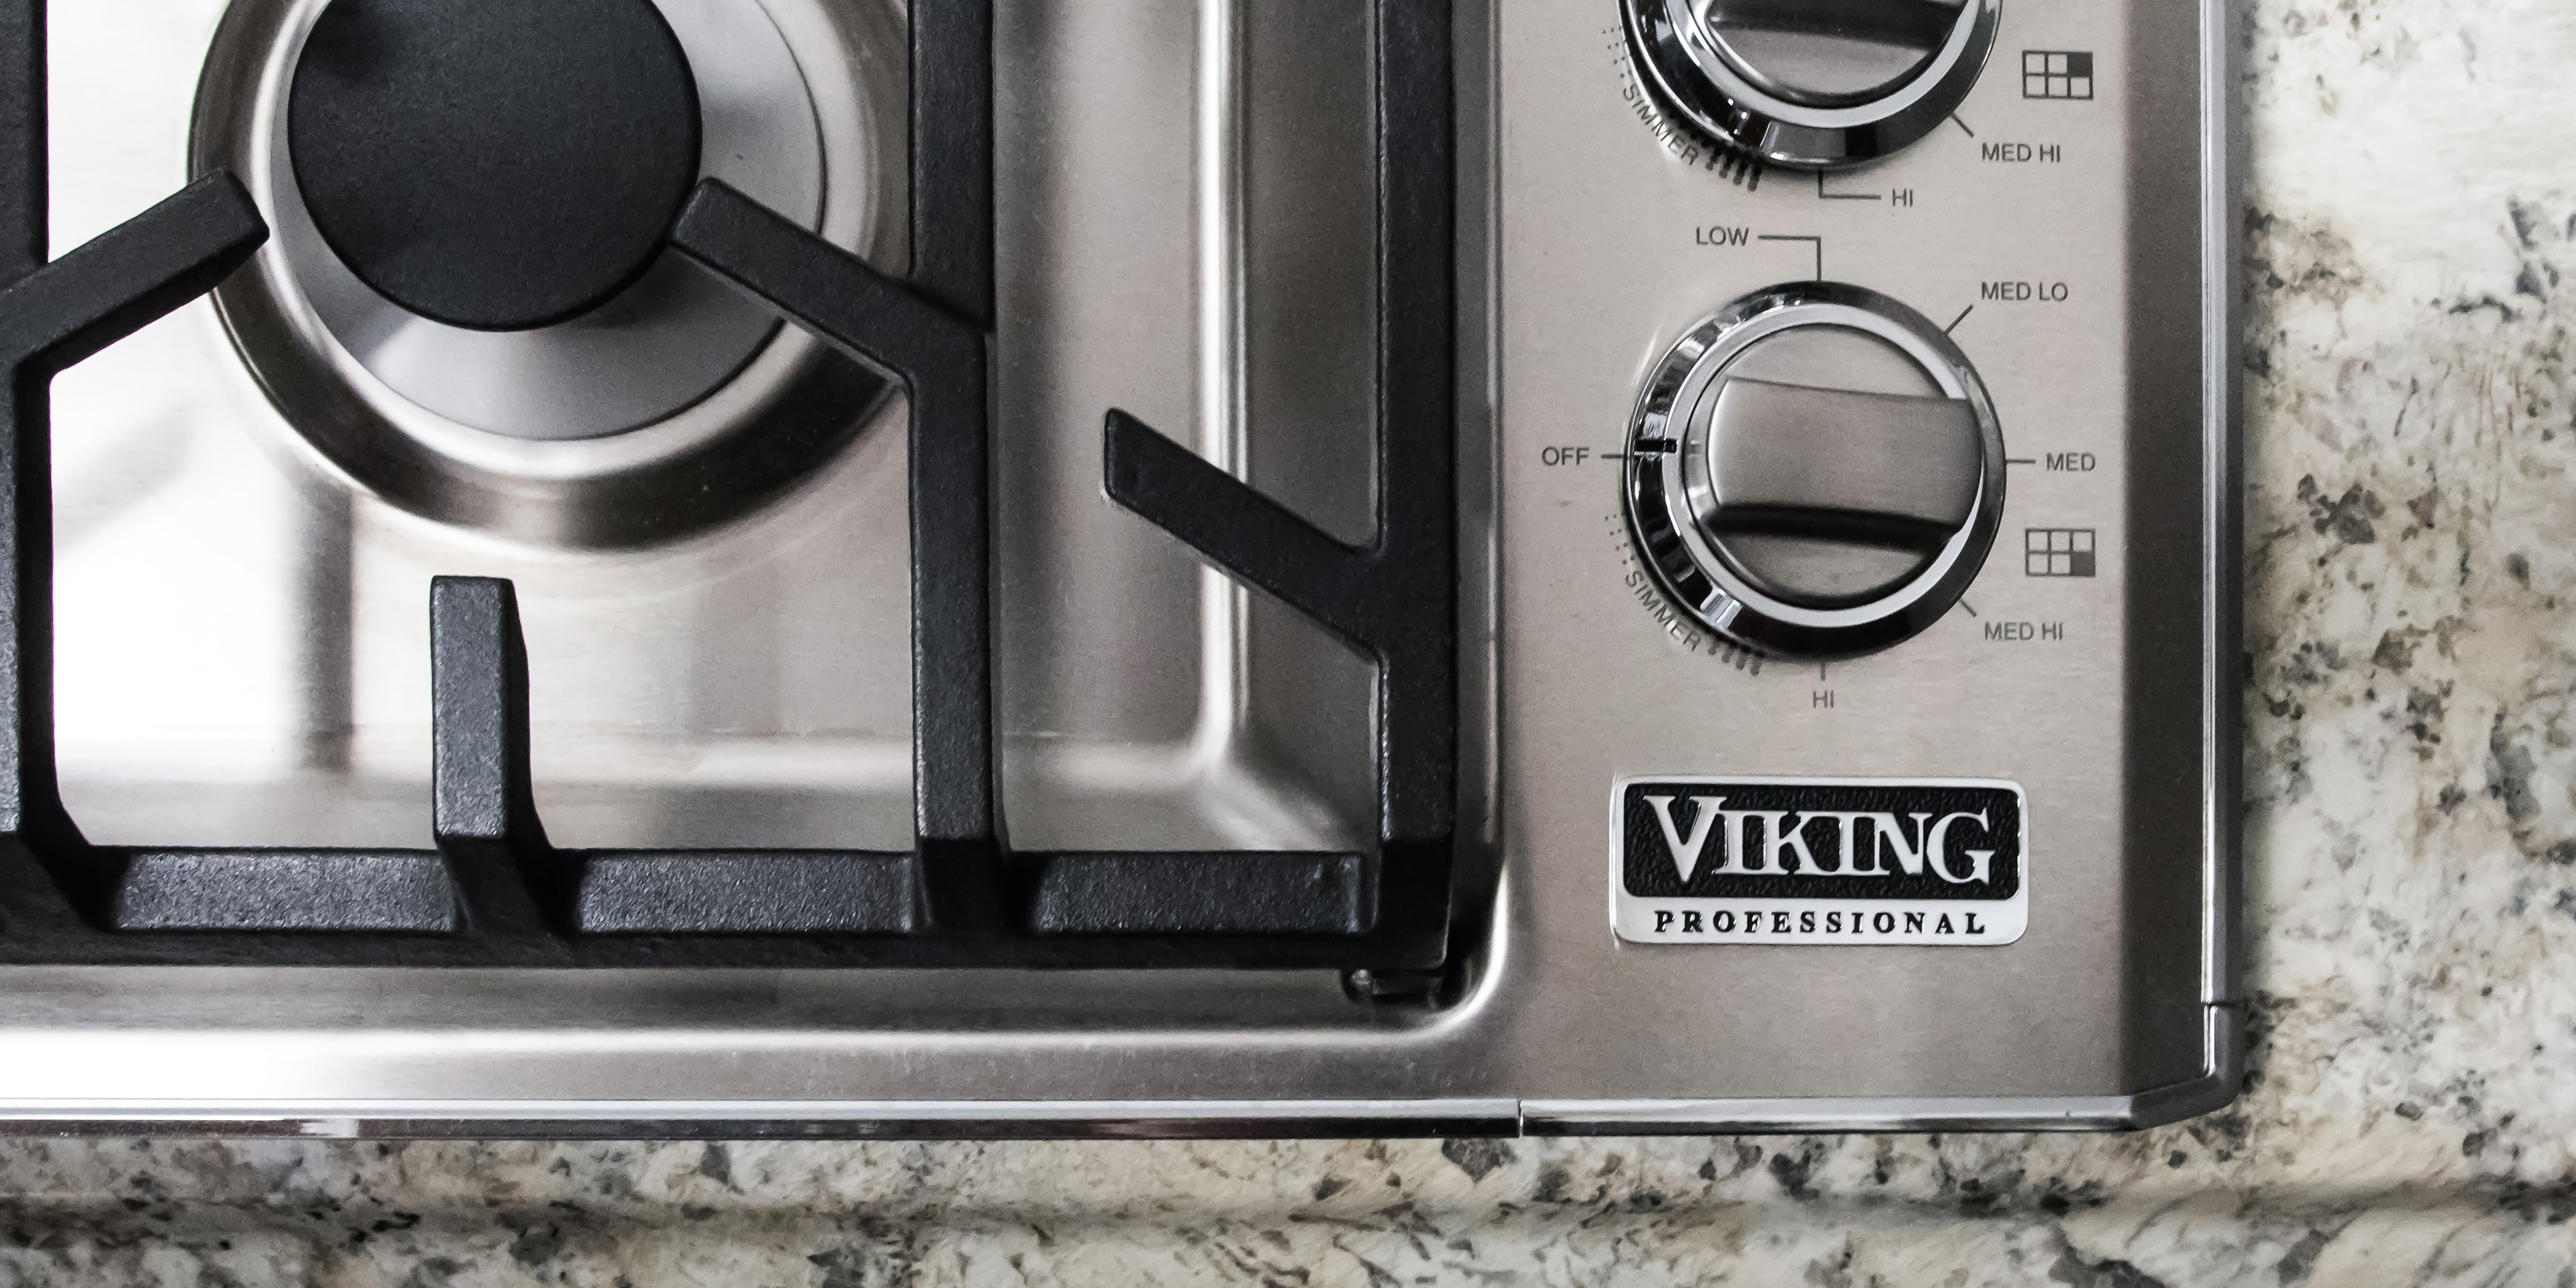 36 Inch Cooktops ~ Viking professional vgsu bss inch gas cooktop review